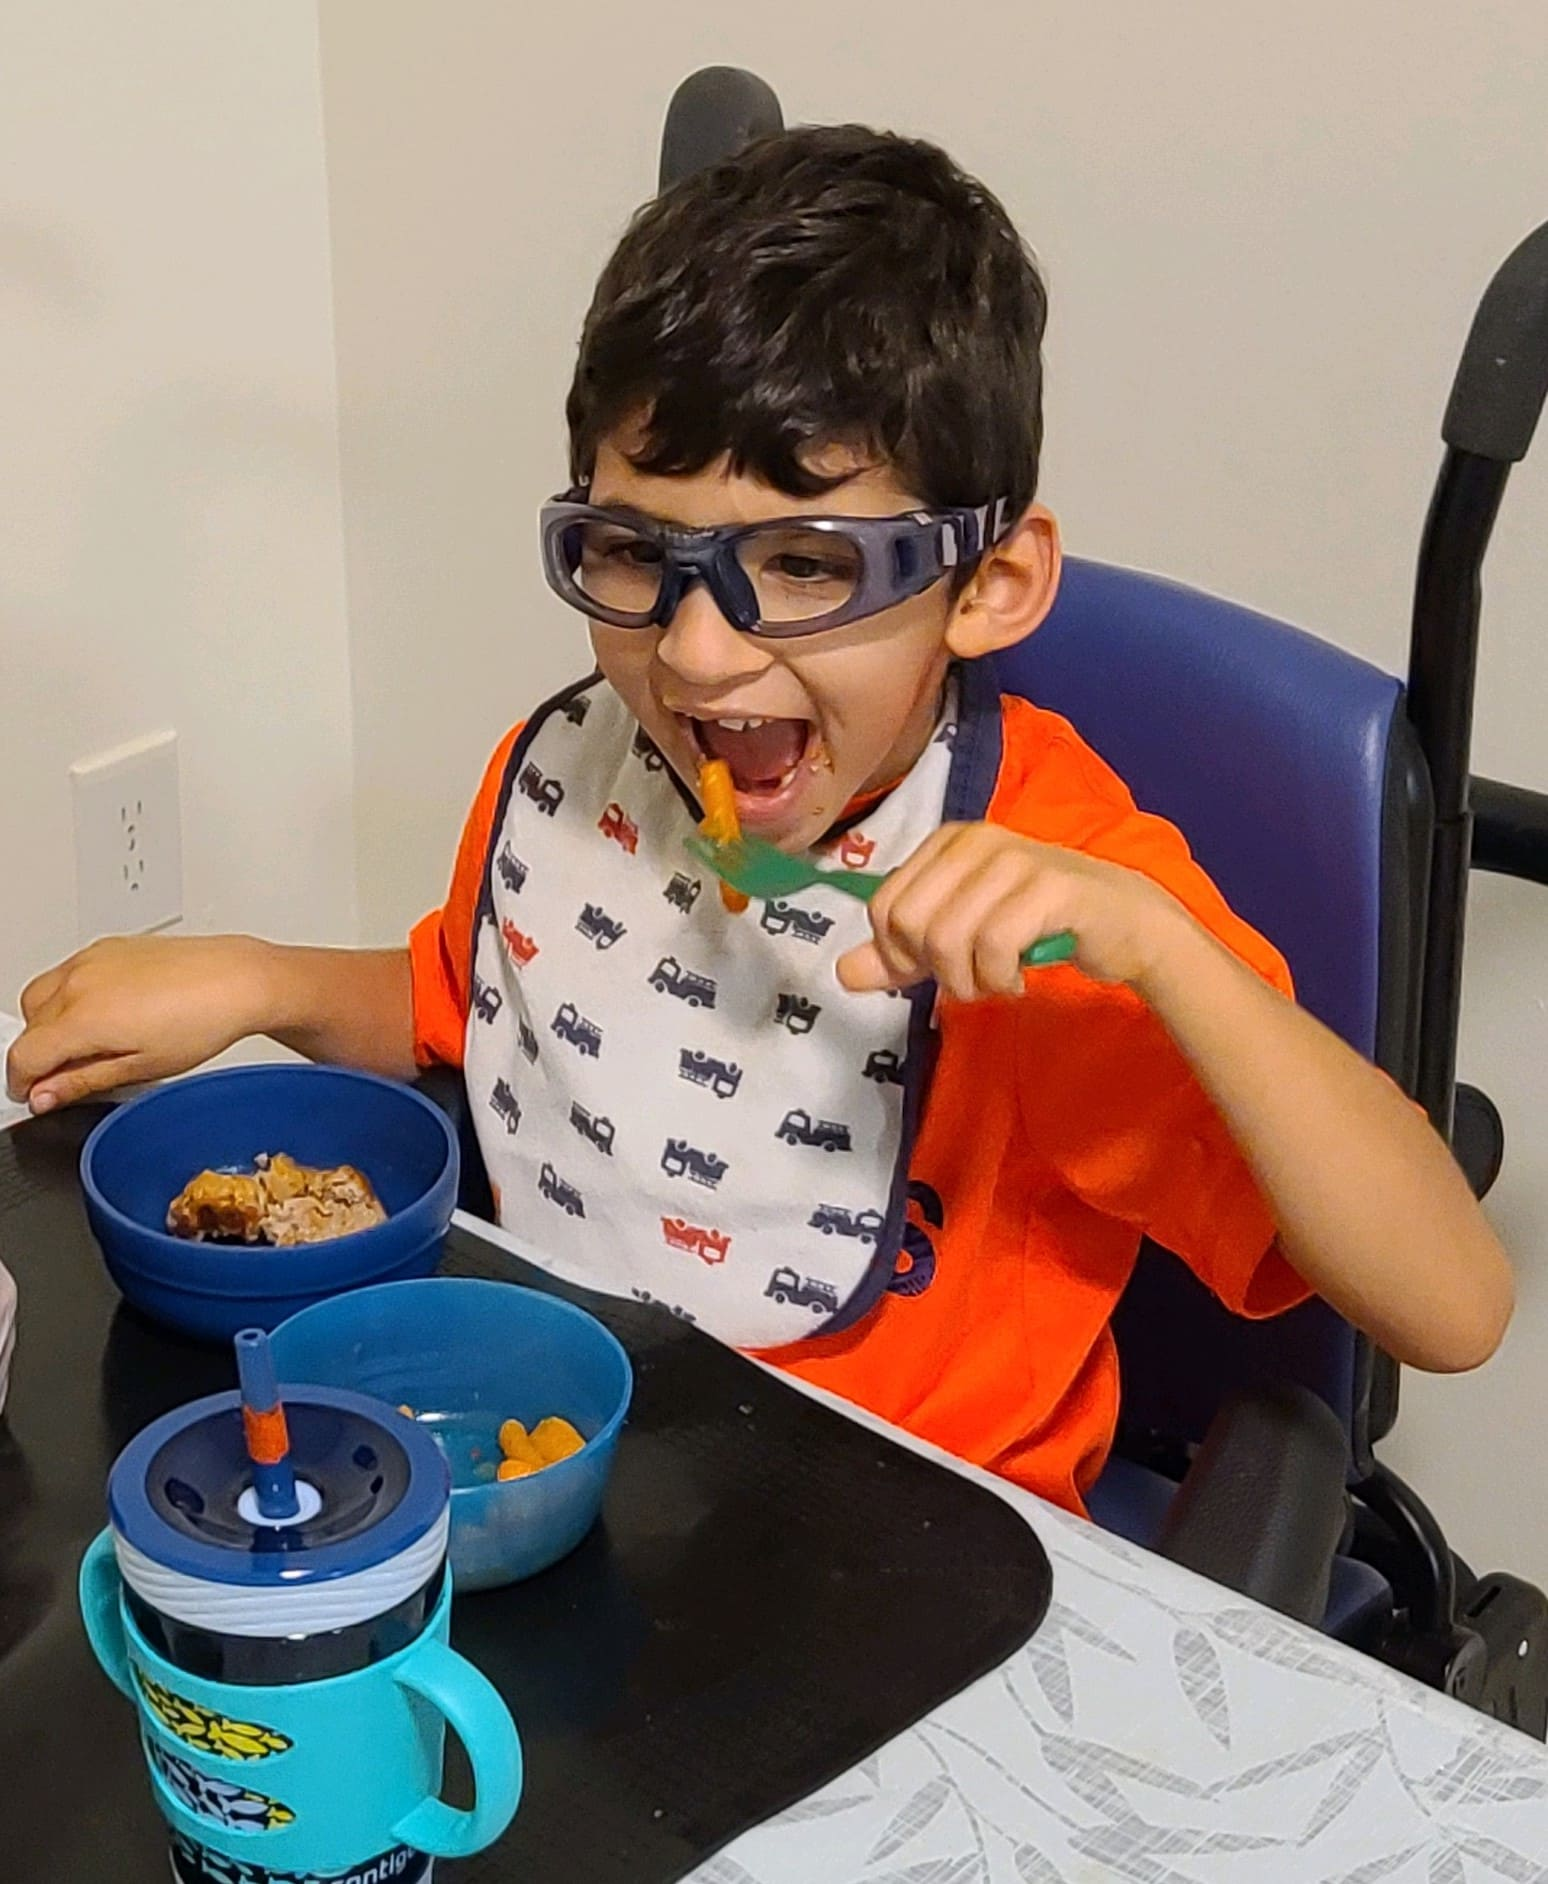 Boy with CVI eating a meal with blue plate and water bottle, and a black mat on the table